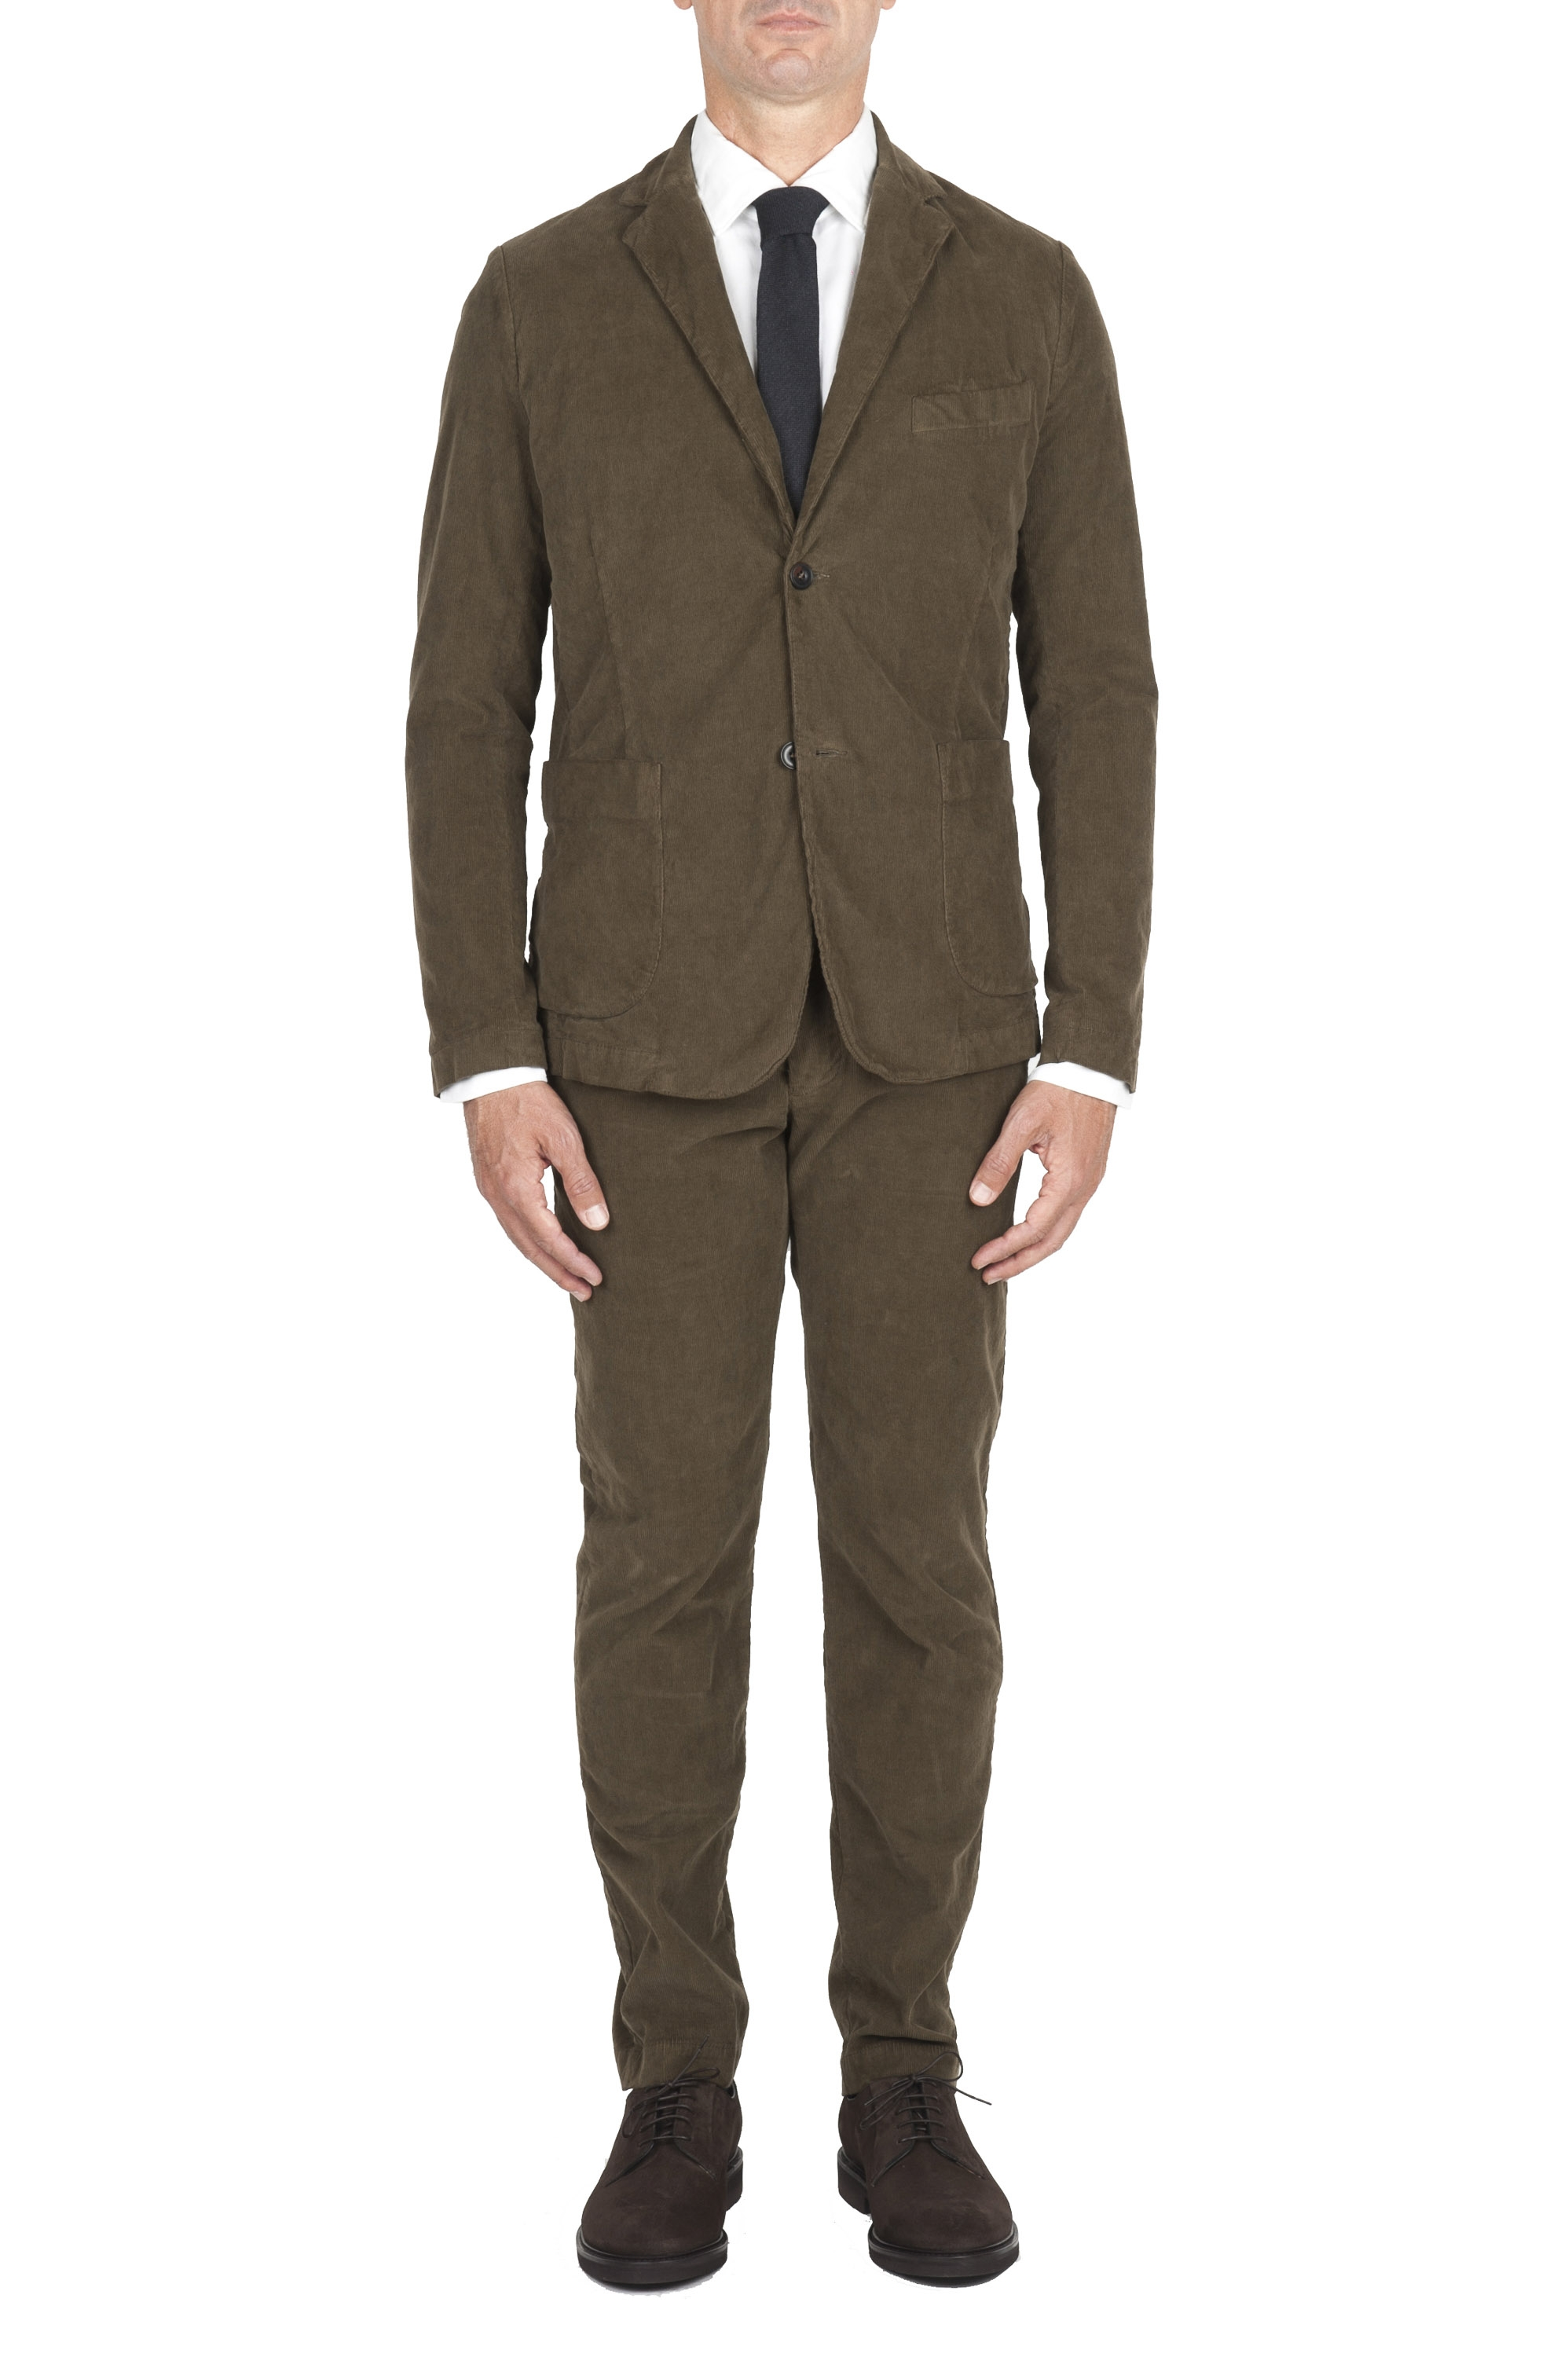 SBU 01552 Green stretch corduroy sport suit blazer and trouser 01